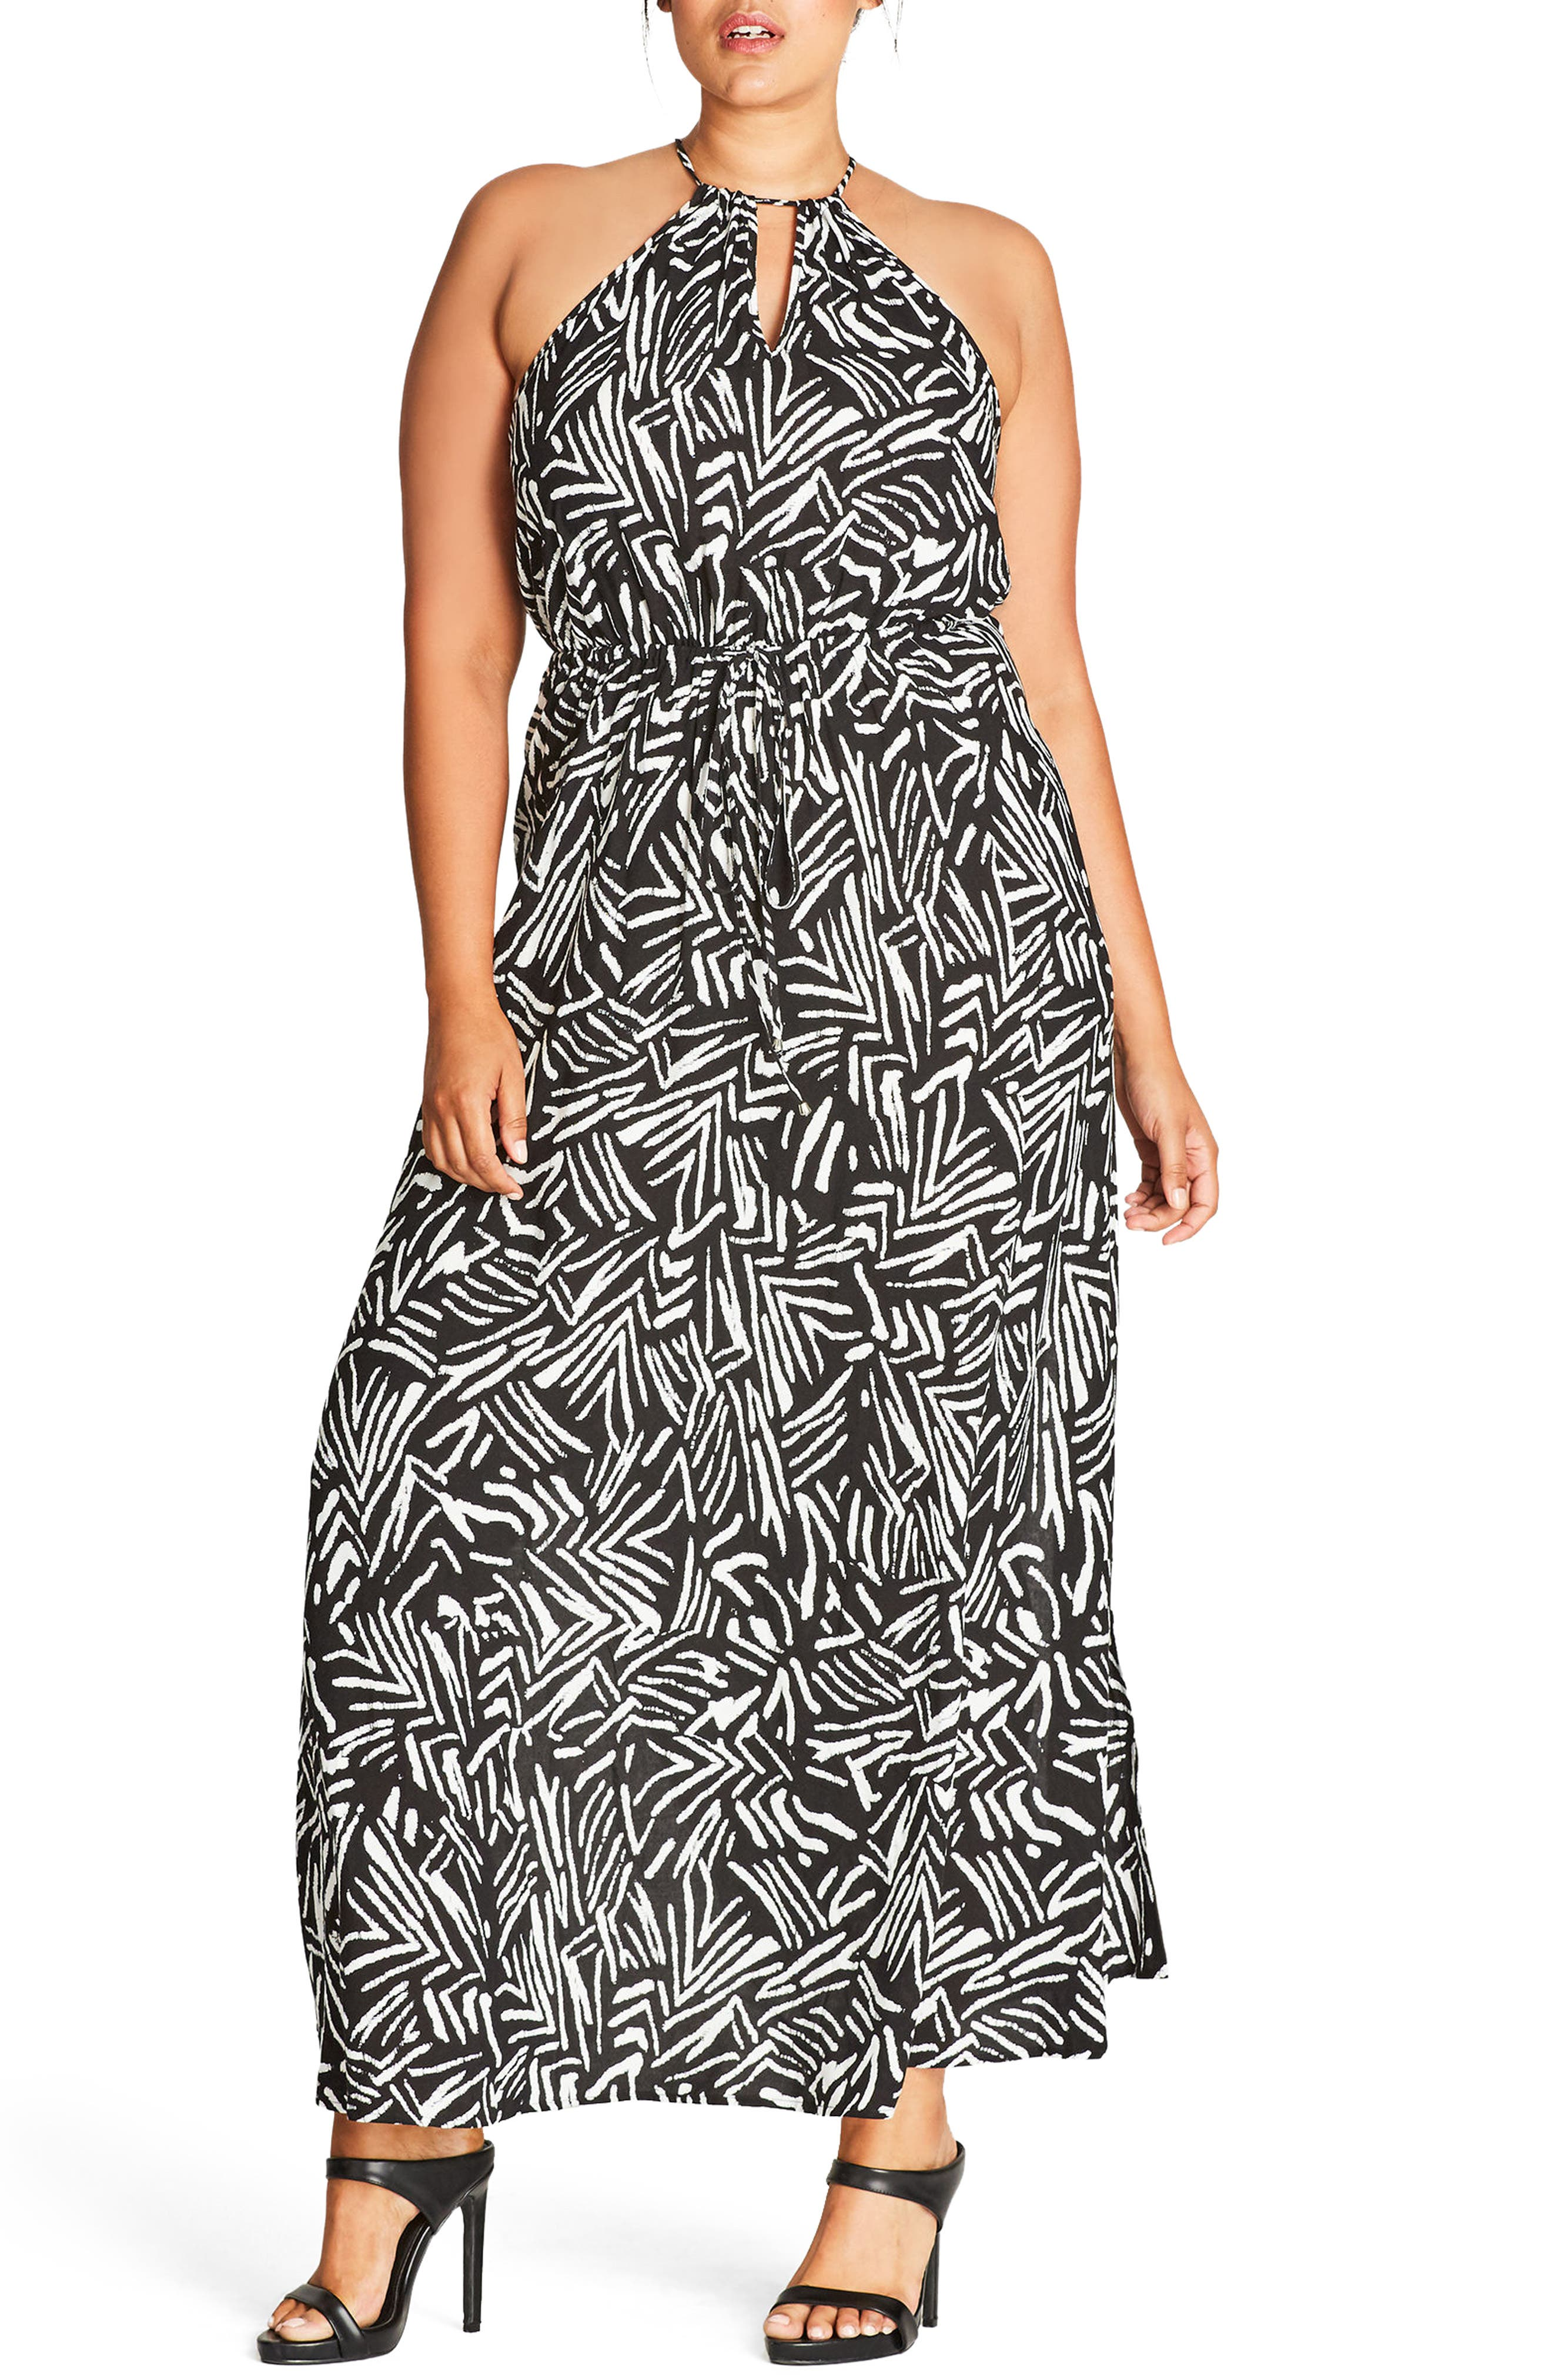 CITY CHIC Halter Maxi Dress